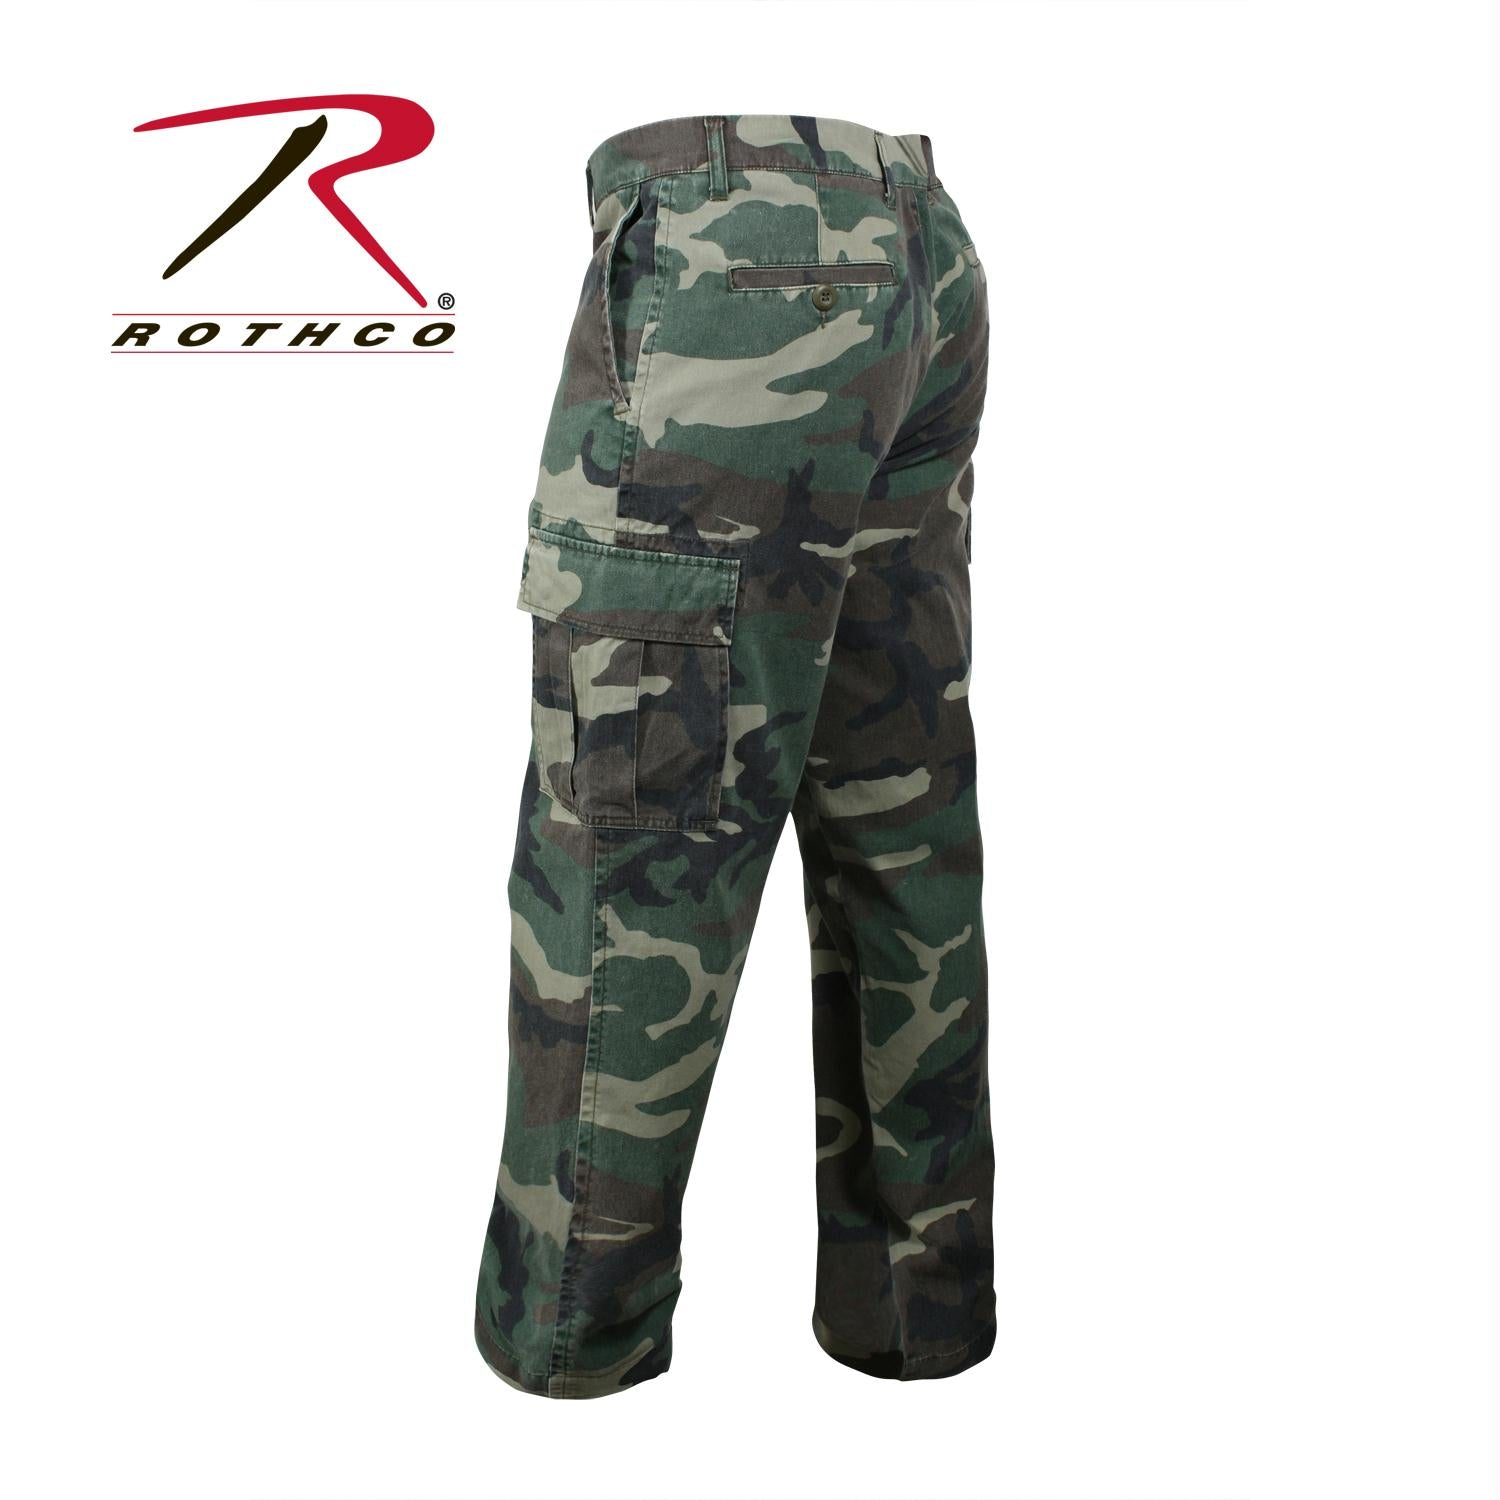 Rothco Vintage 6-Pocket Flat Front Fatigue Pants - Woodland Camo / 38